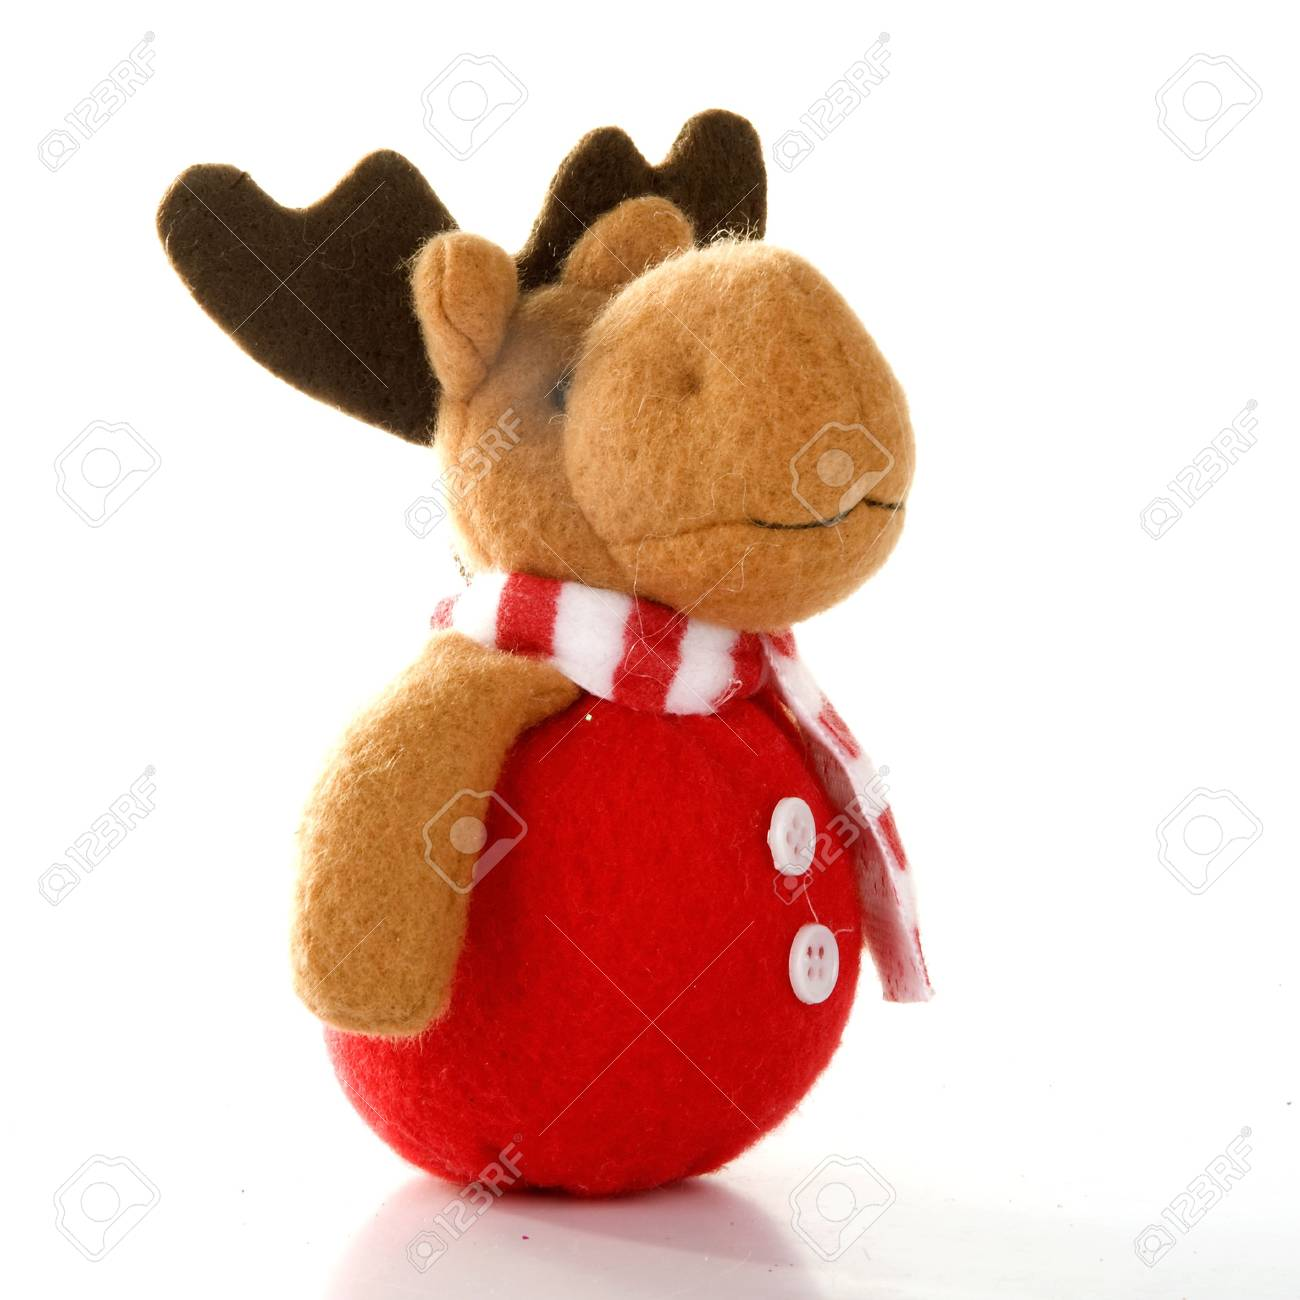 a christmas reindeer with a red nose and a striped shawl Stock Photo - 5442001